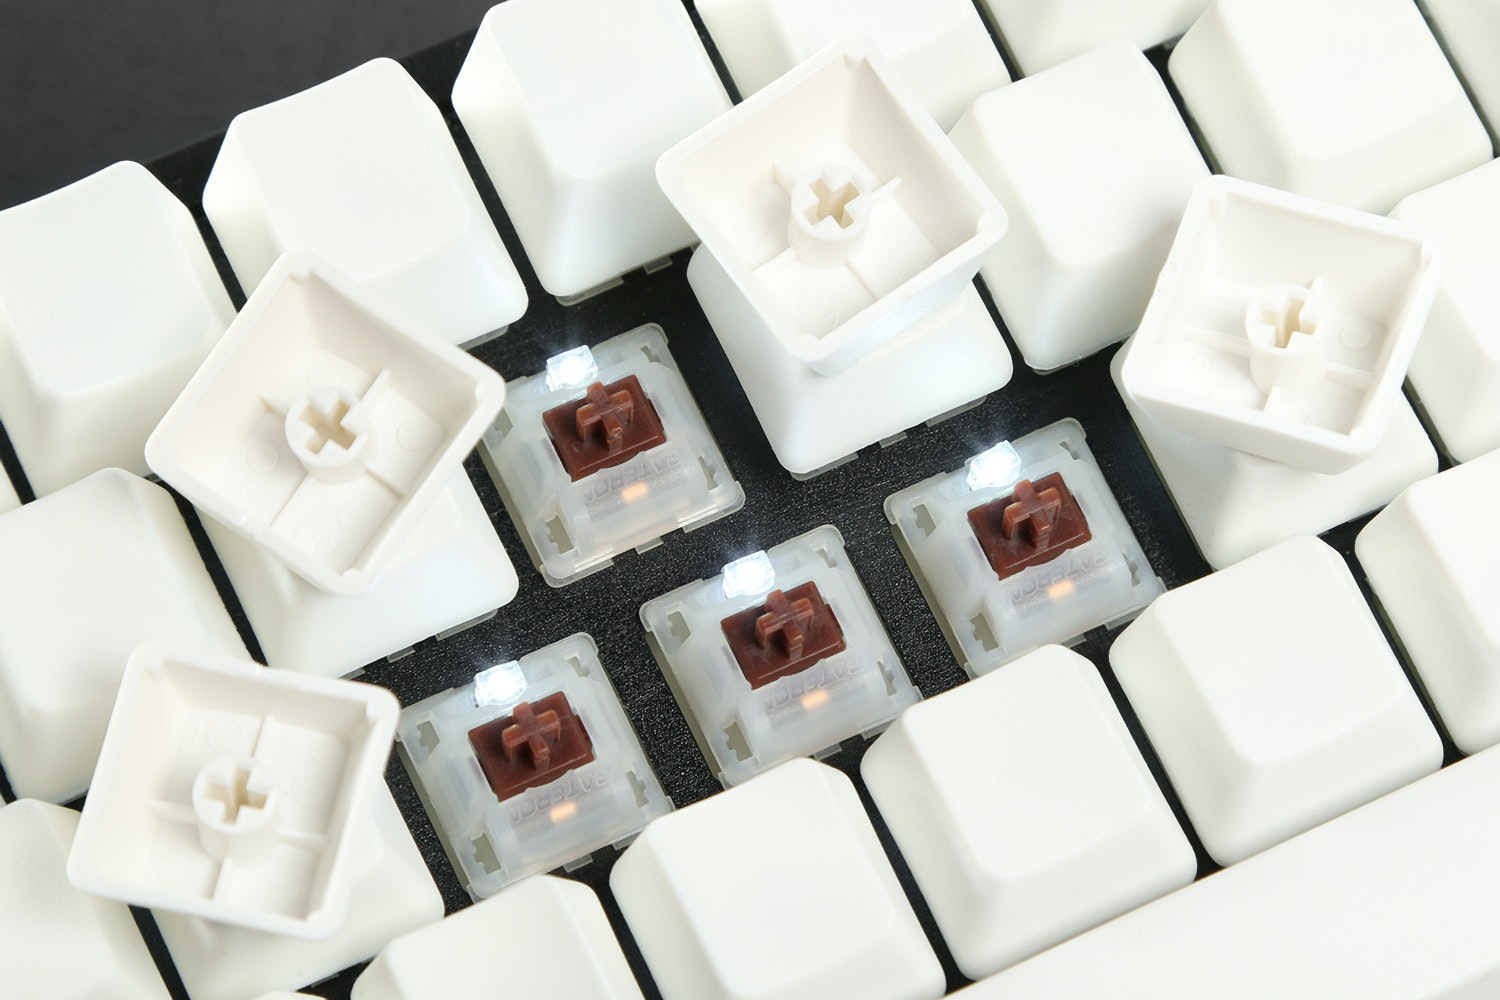 Sentraq TK78 Mechanical Keyboard Kit